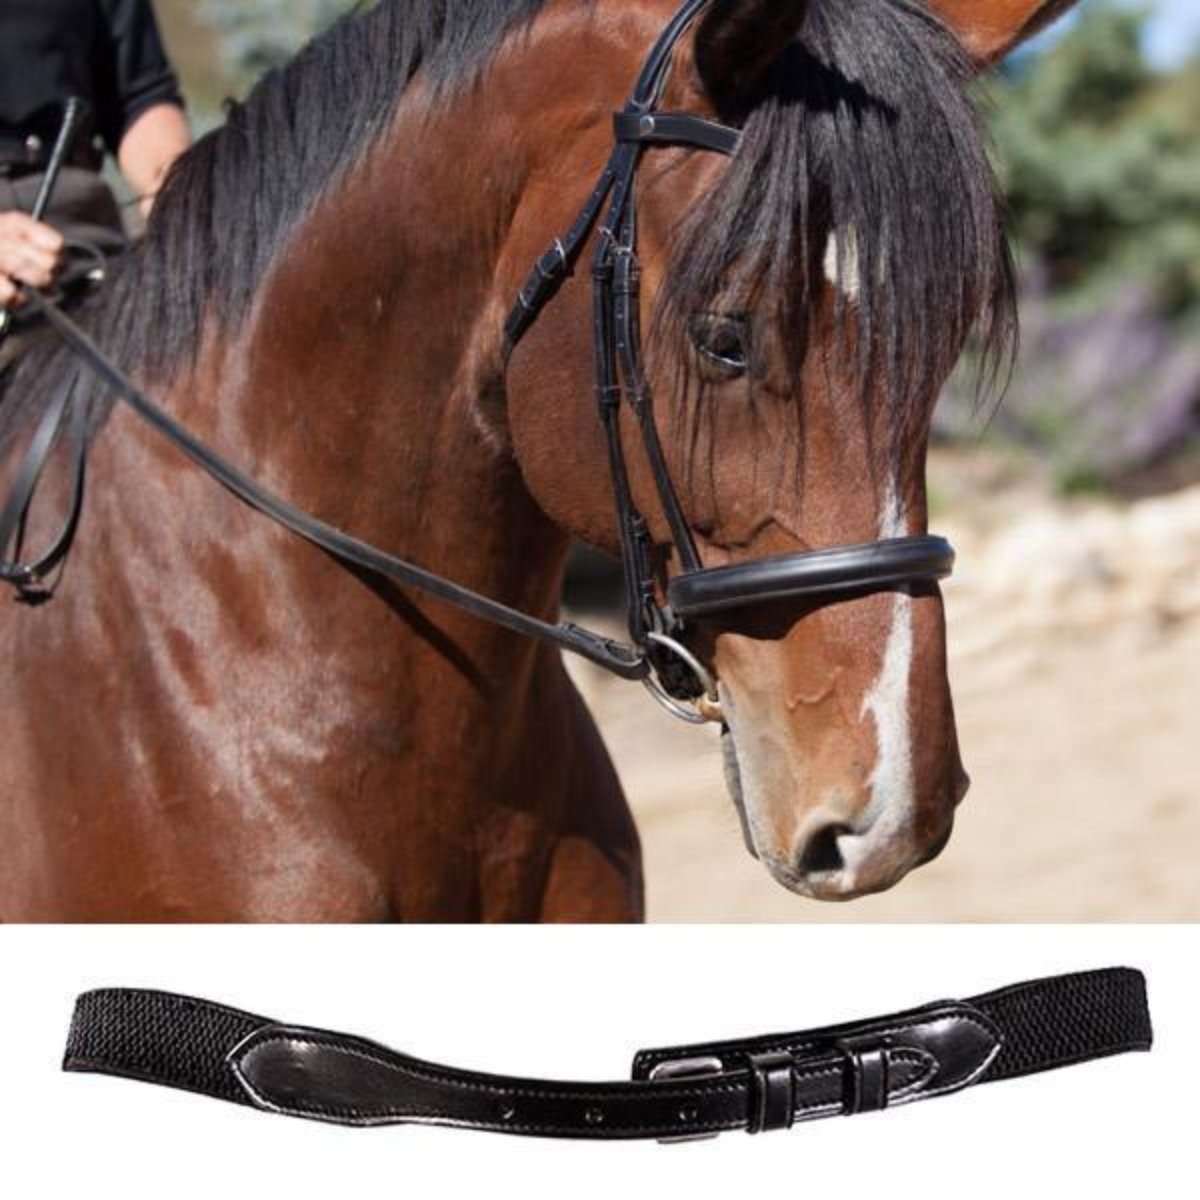 10/' DRESSAGE SPORT REIN FOR PARELLI OR ROHLF TRAINING MANY COLORS AVAILABLE